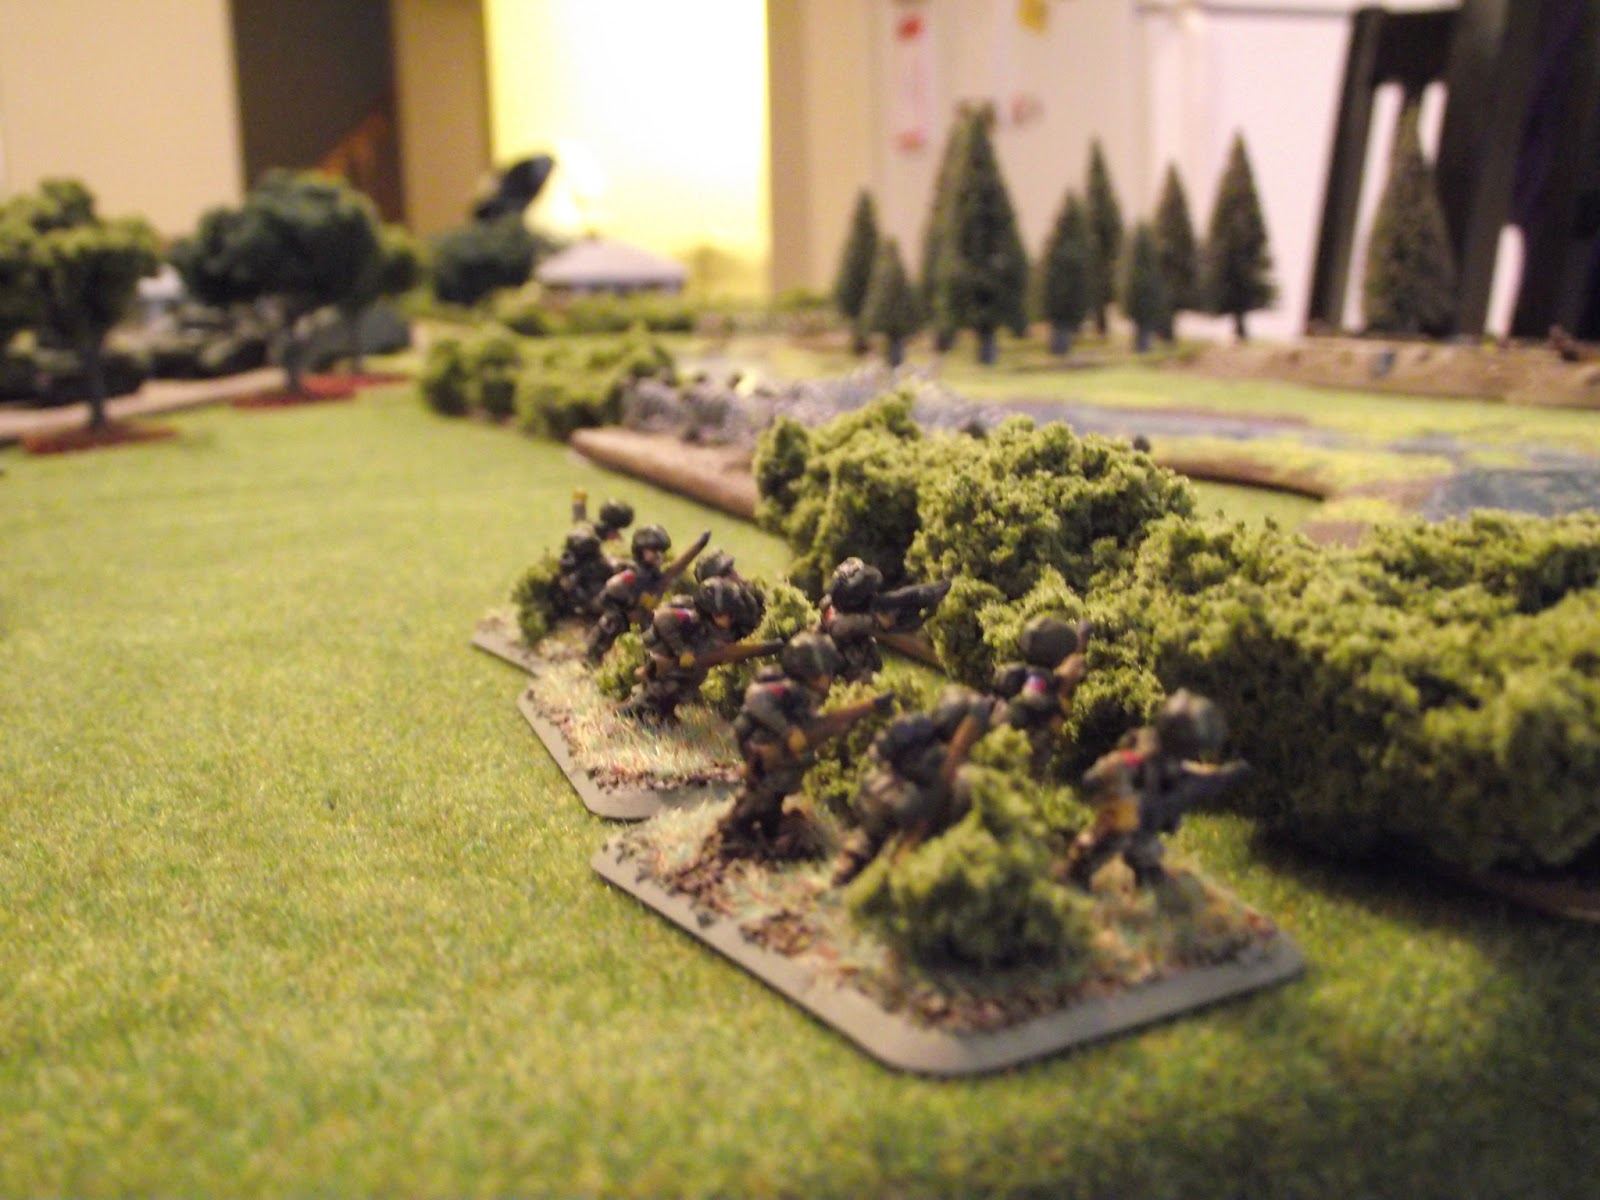 US Paratroops move up to lay some fire down on the Germans across the river in the trench.